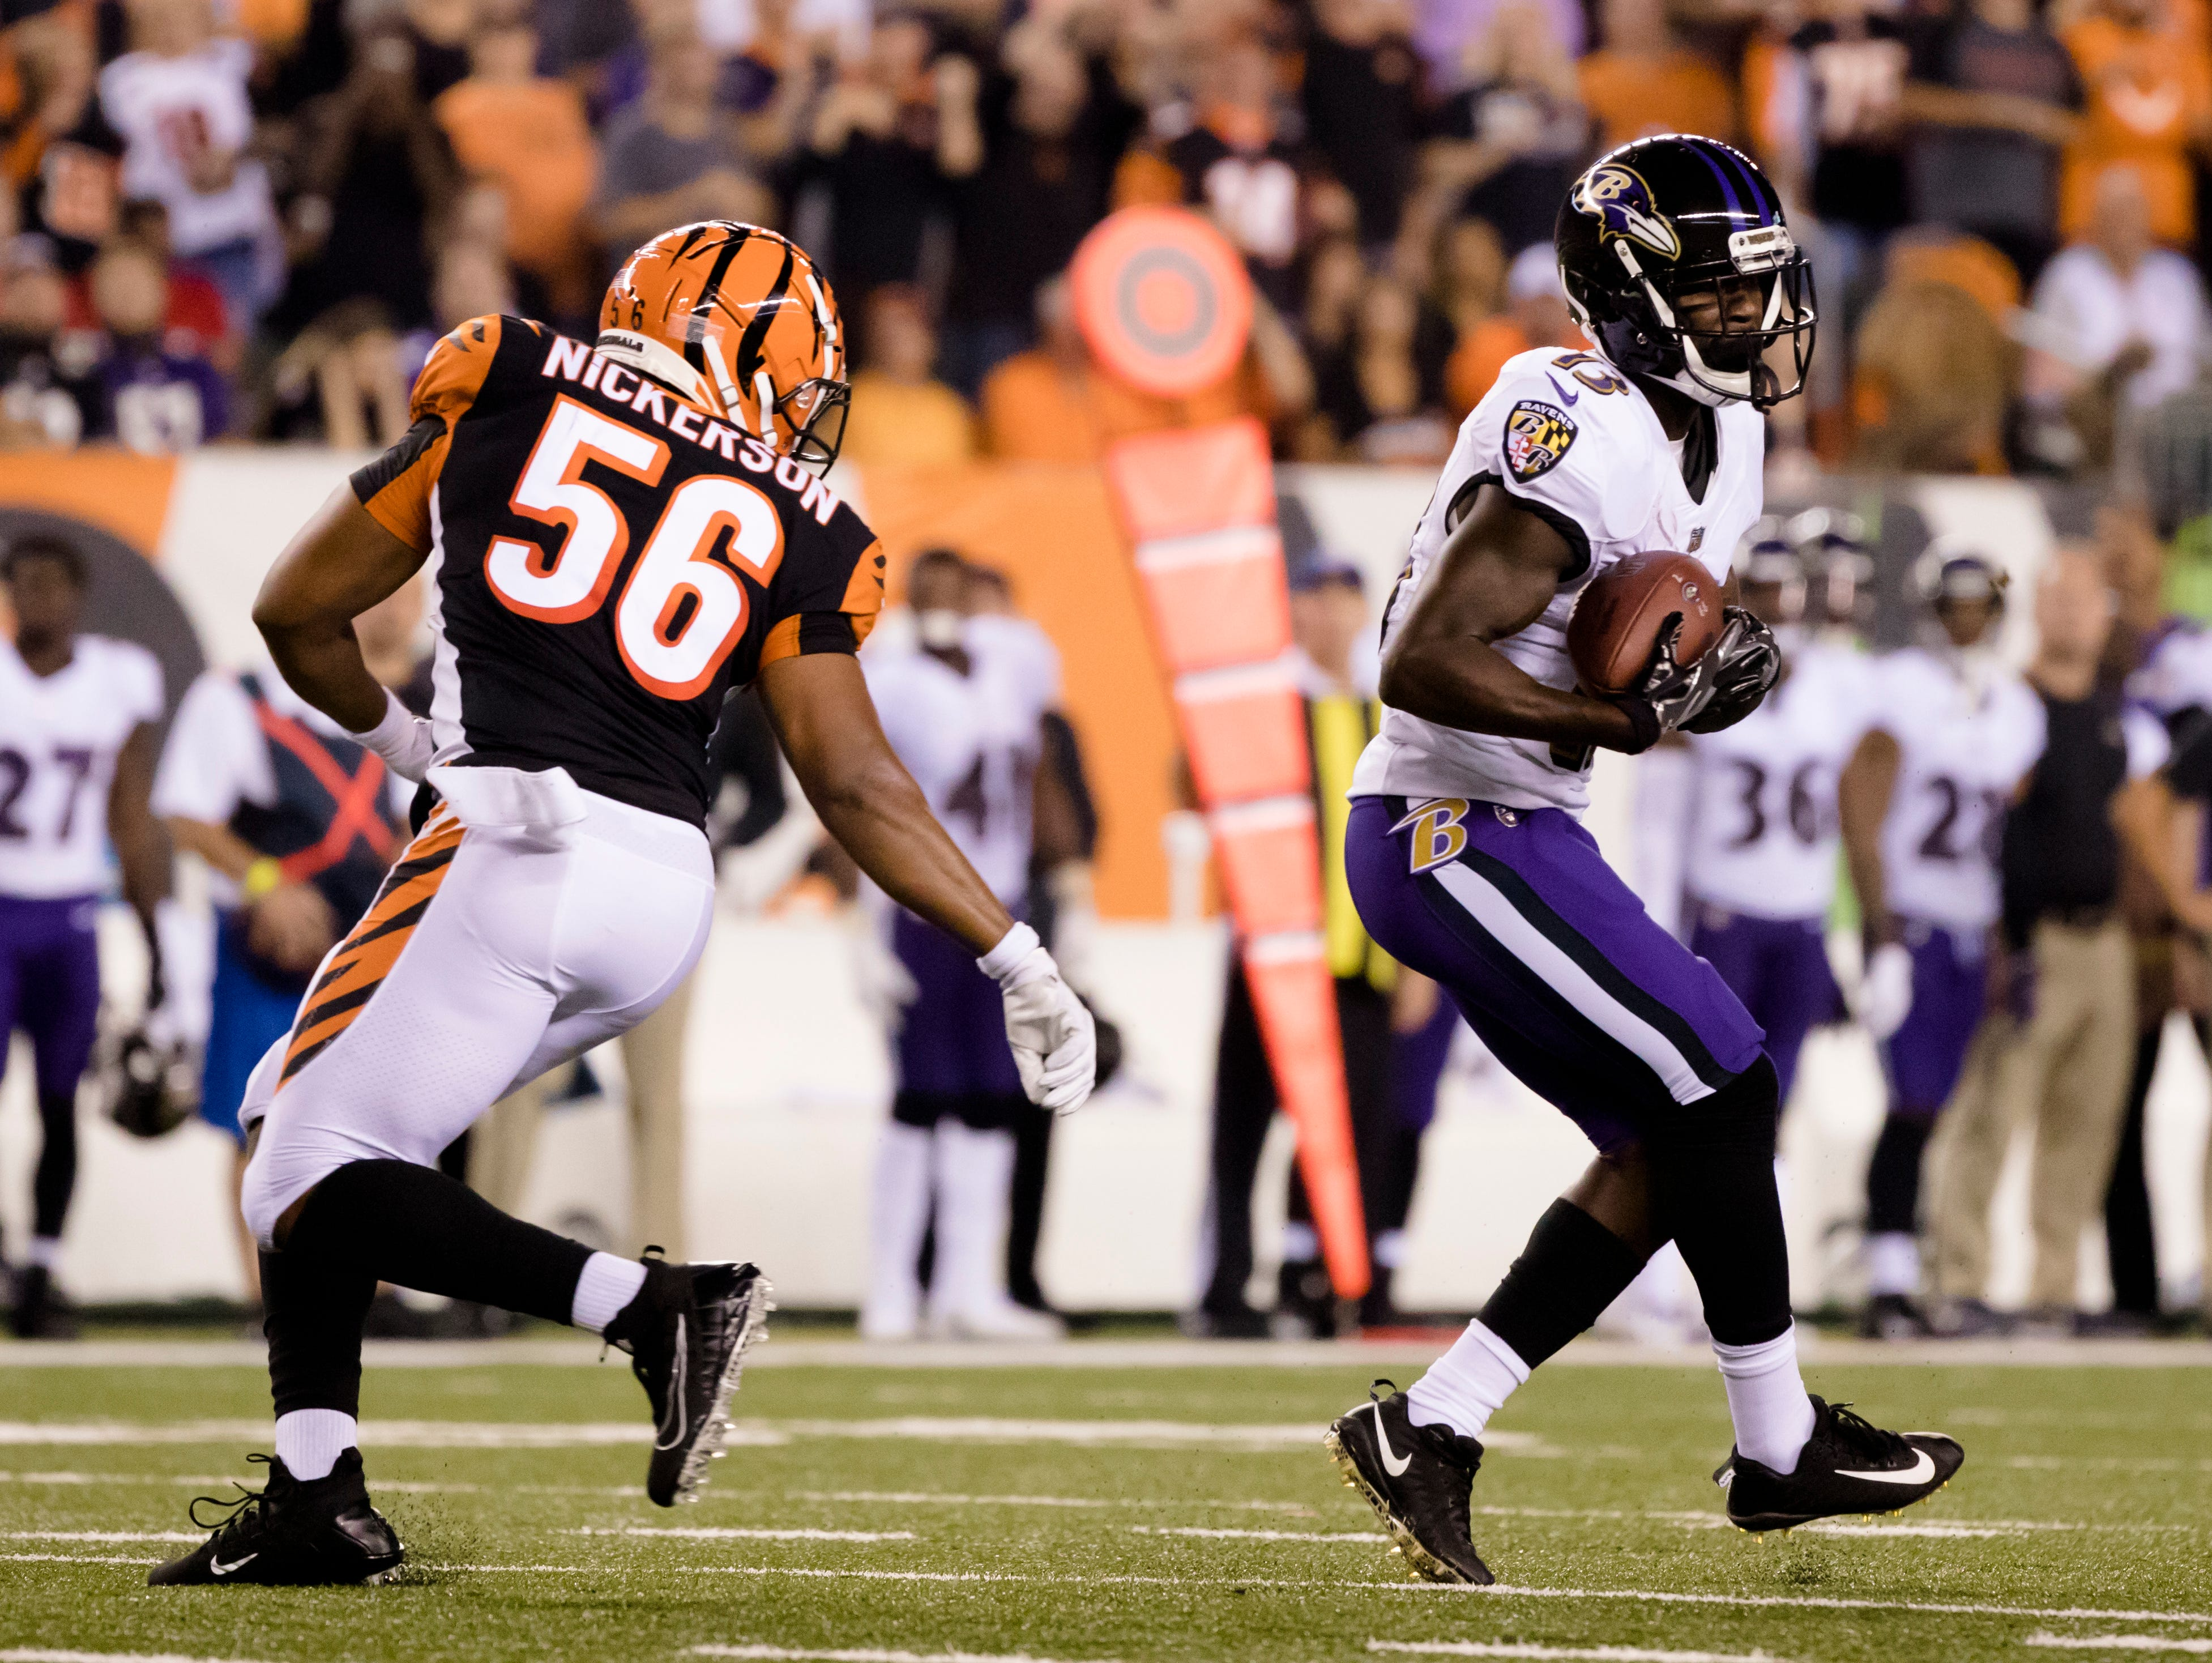 Baltimore Ravens wide receiver John Brown (13) carts a pass as Cincinnati Bengals linebacker Hardy Nickerson (56) covers him during the Week 2 NFL game between the Cincinnati Bengals and the Baltimore Ravens, Thursday, Sept. 13, 2018, at Paul Brown Stadium in Cincinnati.